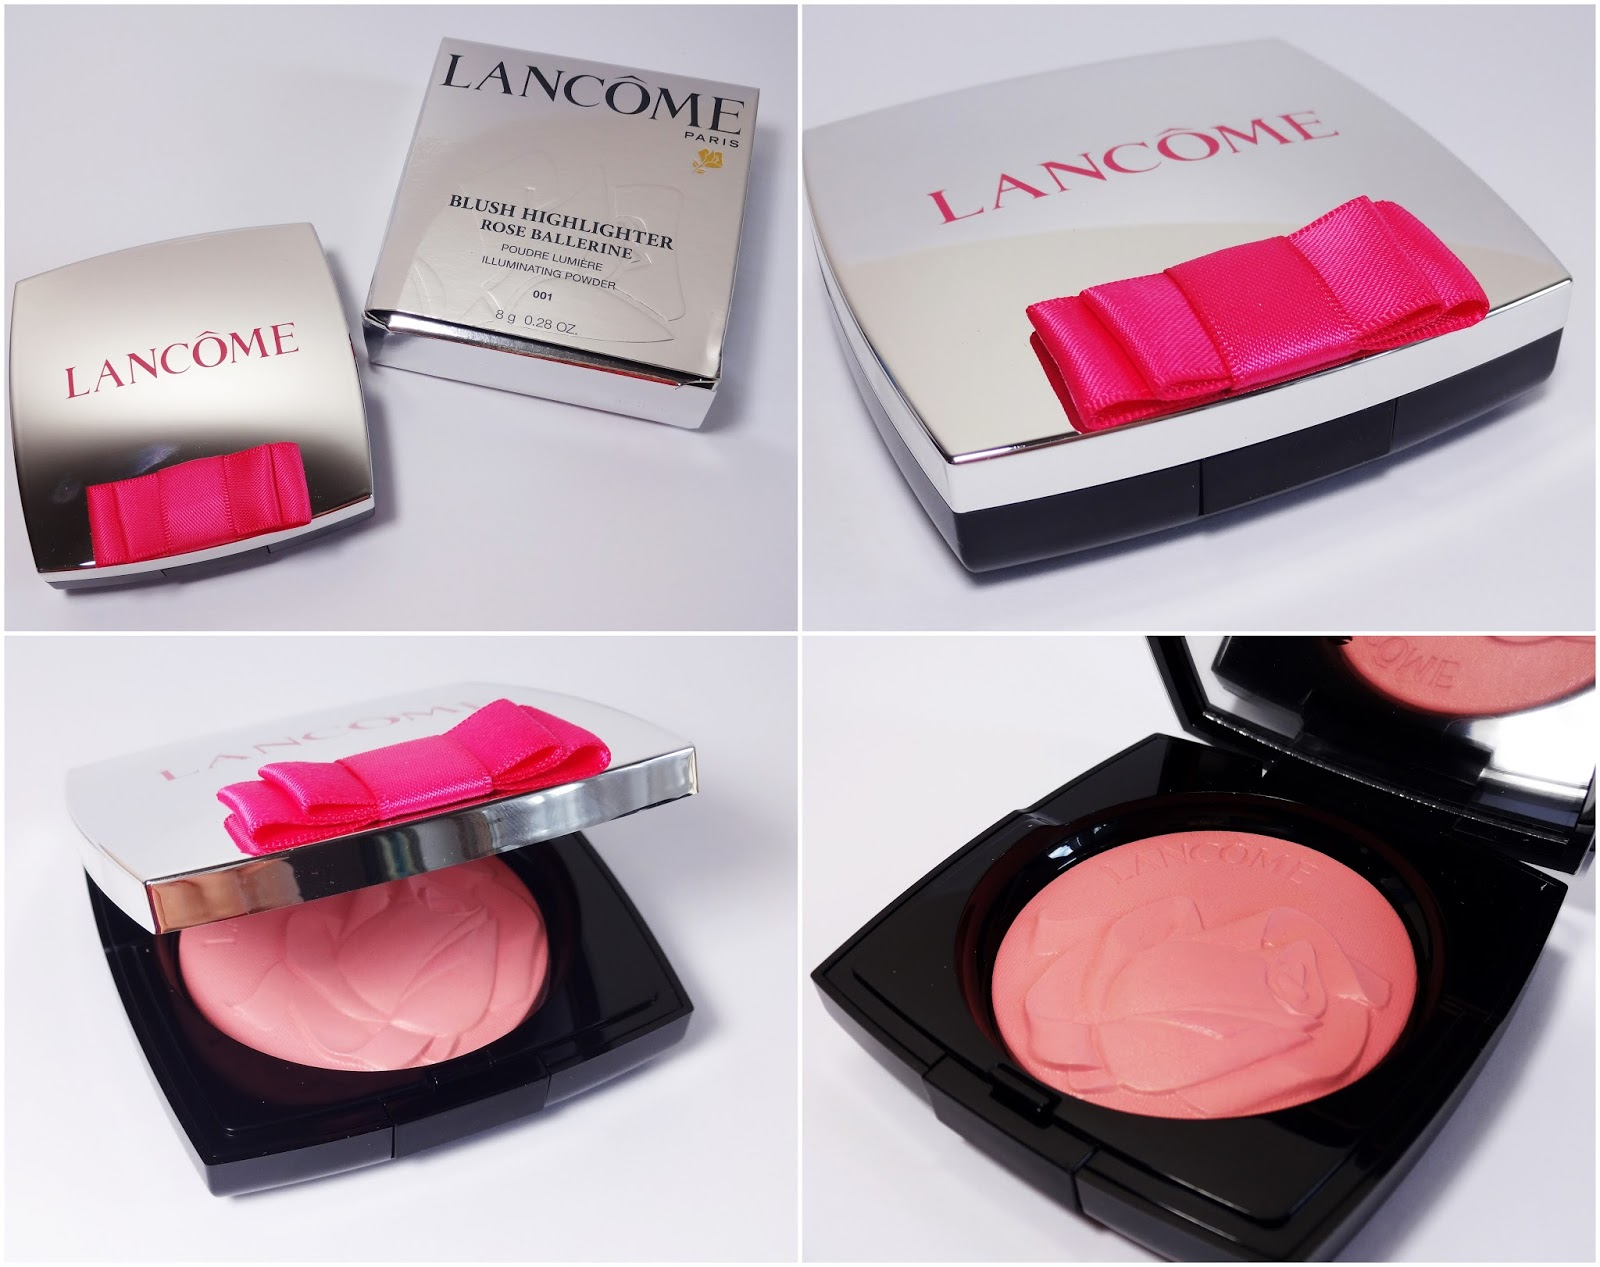 Lancome Rose Ballerine Highlighter Blush (French Ballerine Spring 2014)